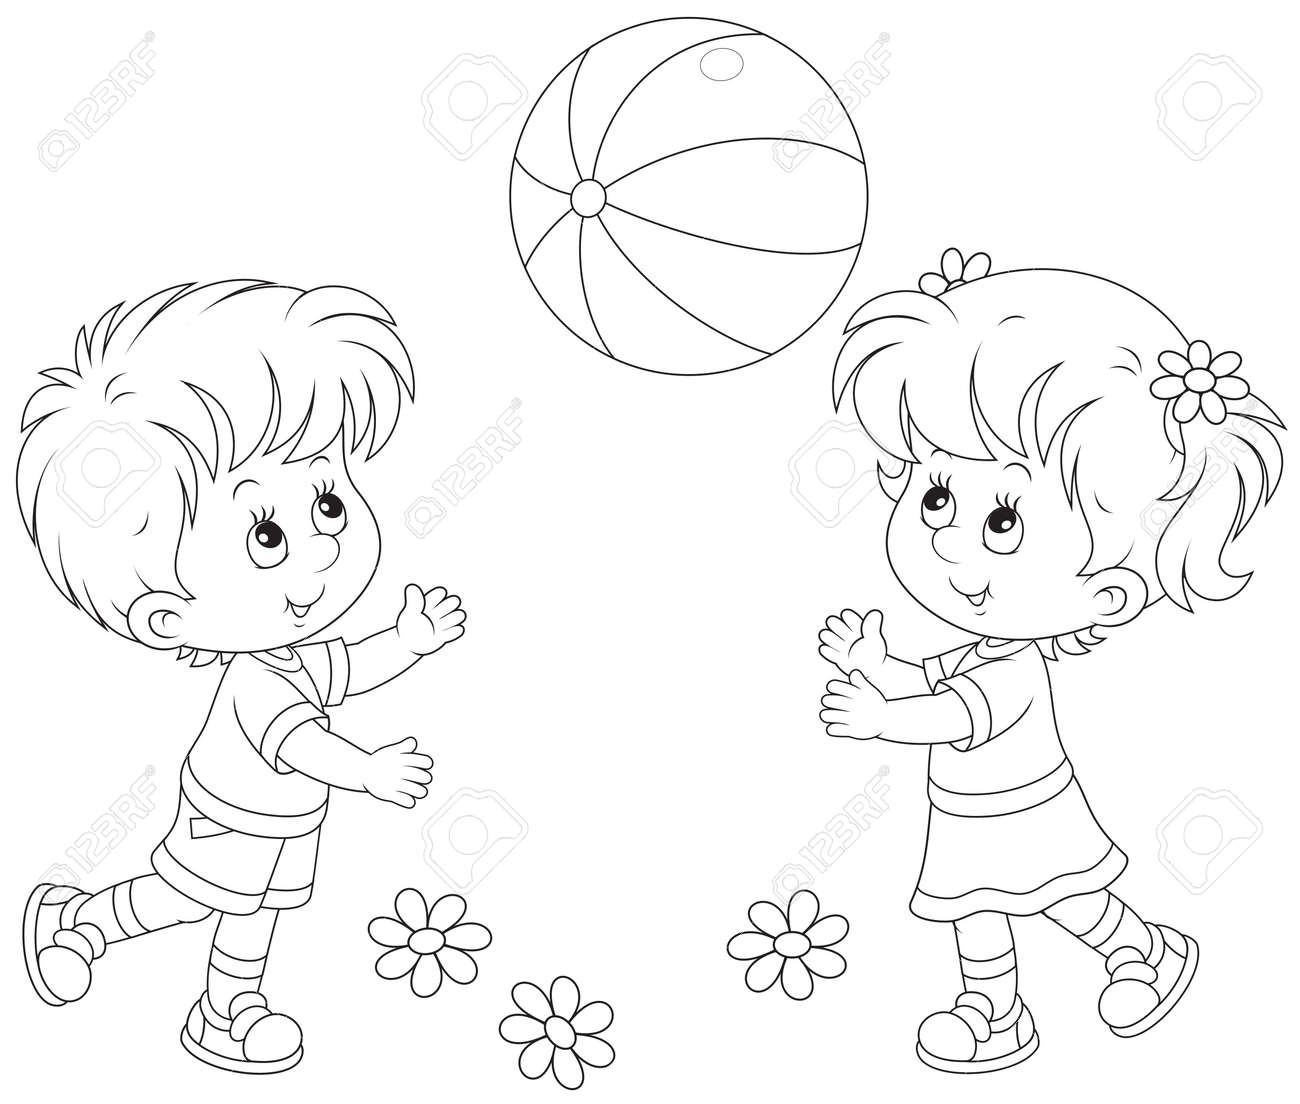 Children Playing Line Drawing